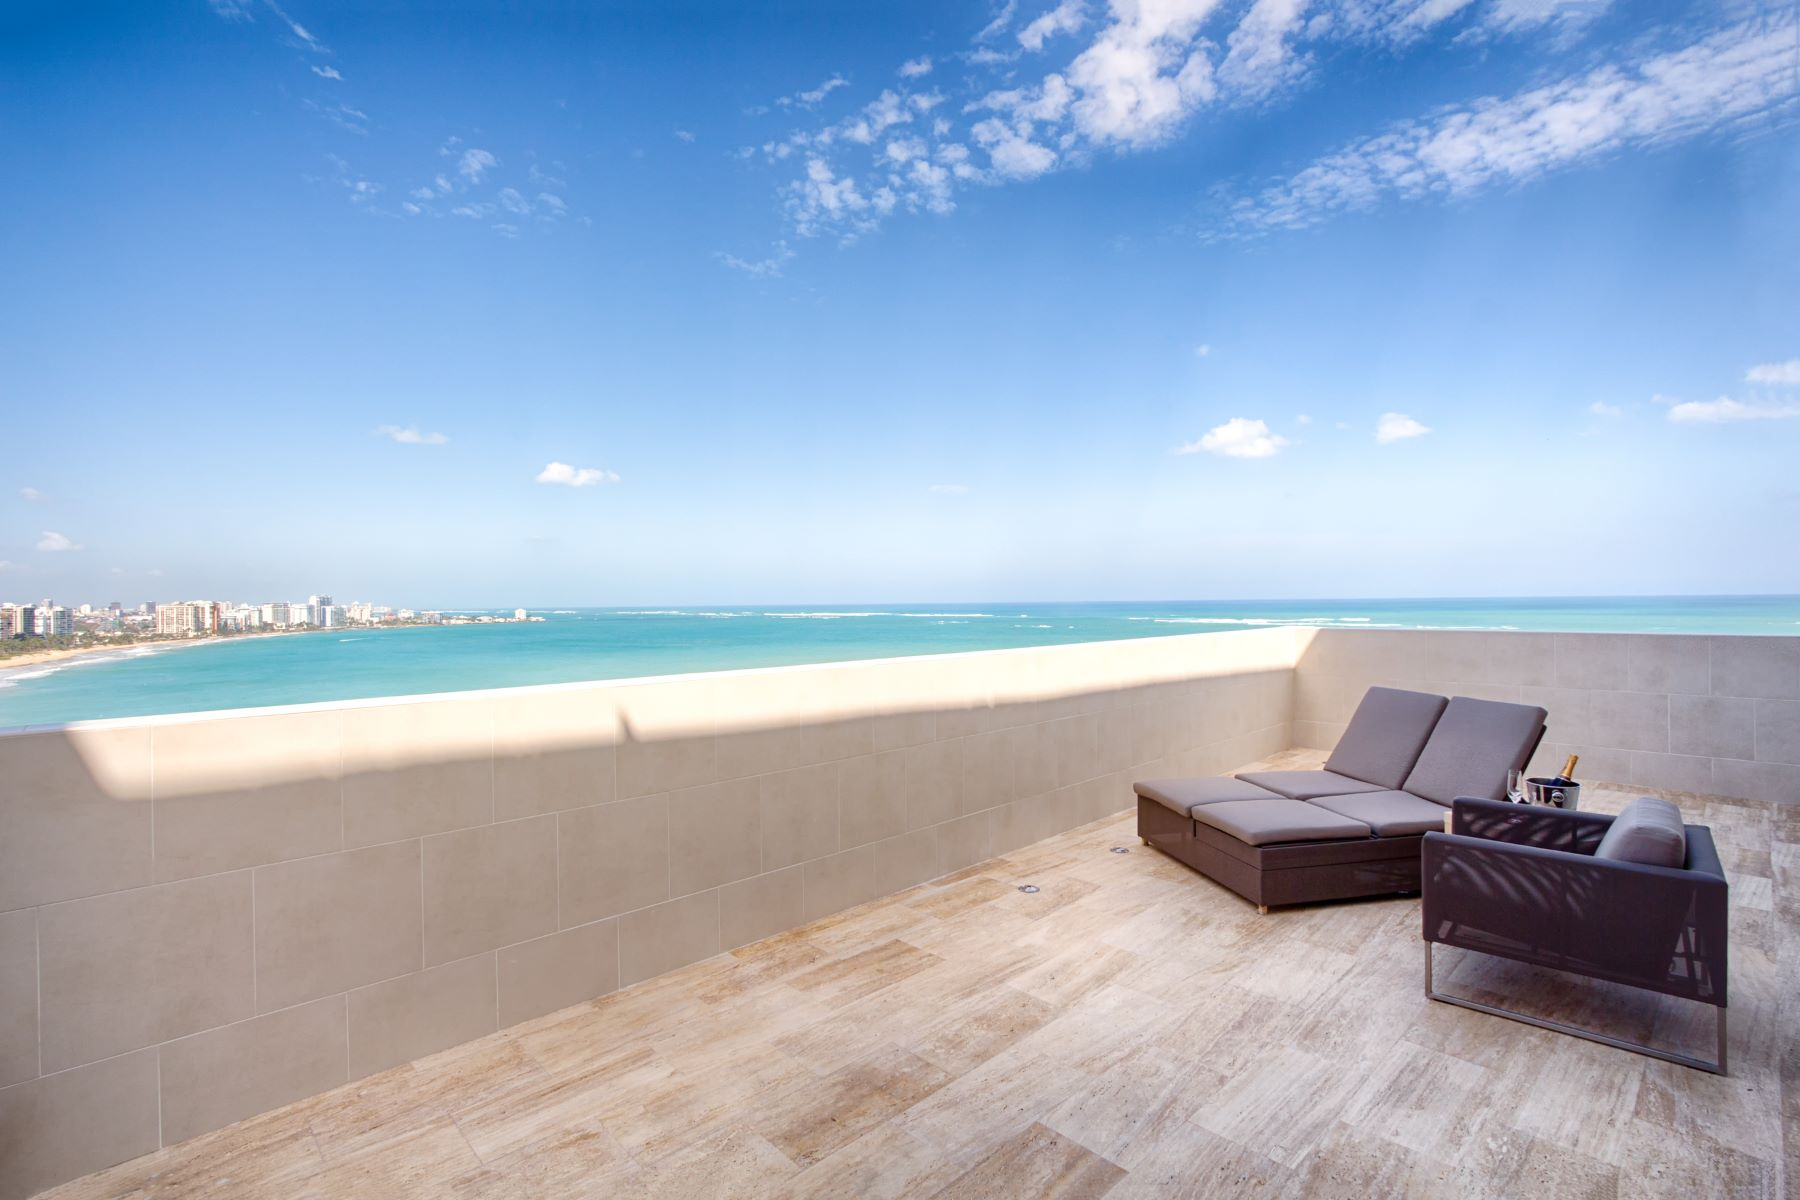 複式單位 為 出售 在 The Ultimate Beach Penthouse 6165 Isla Verde Ave. PH Carolina, Puerto Rico 00979 波多黎各